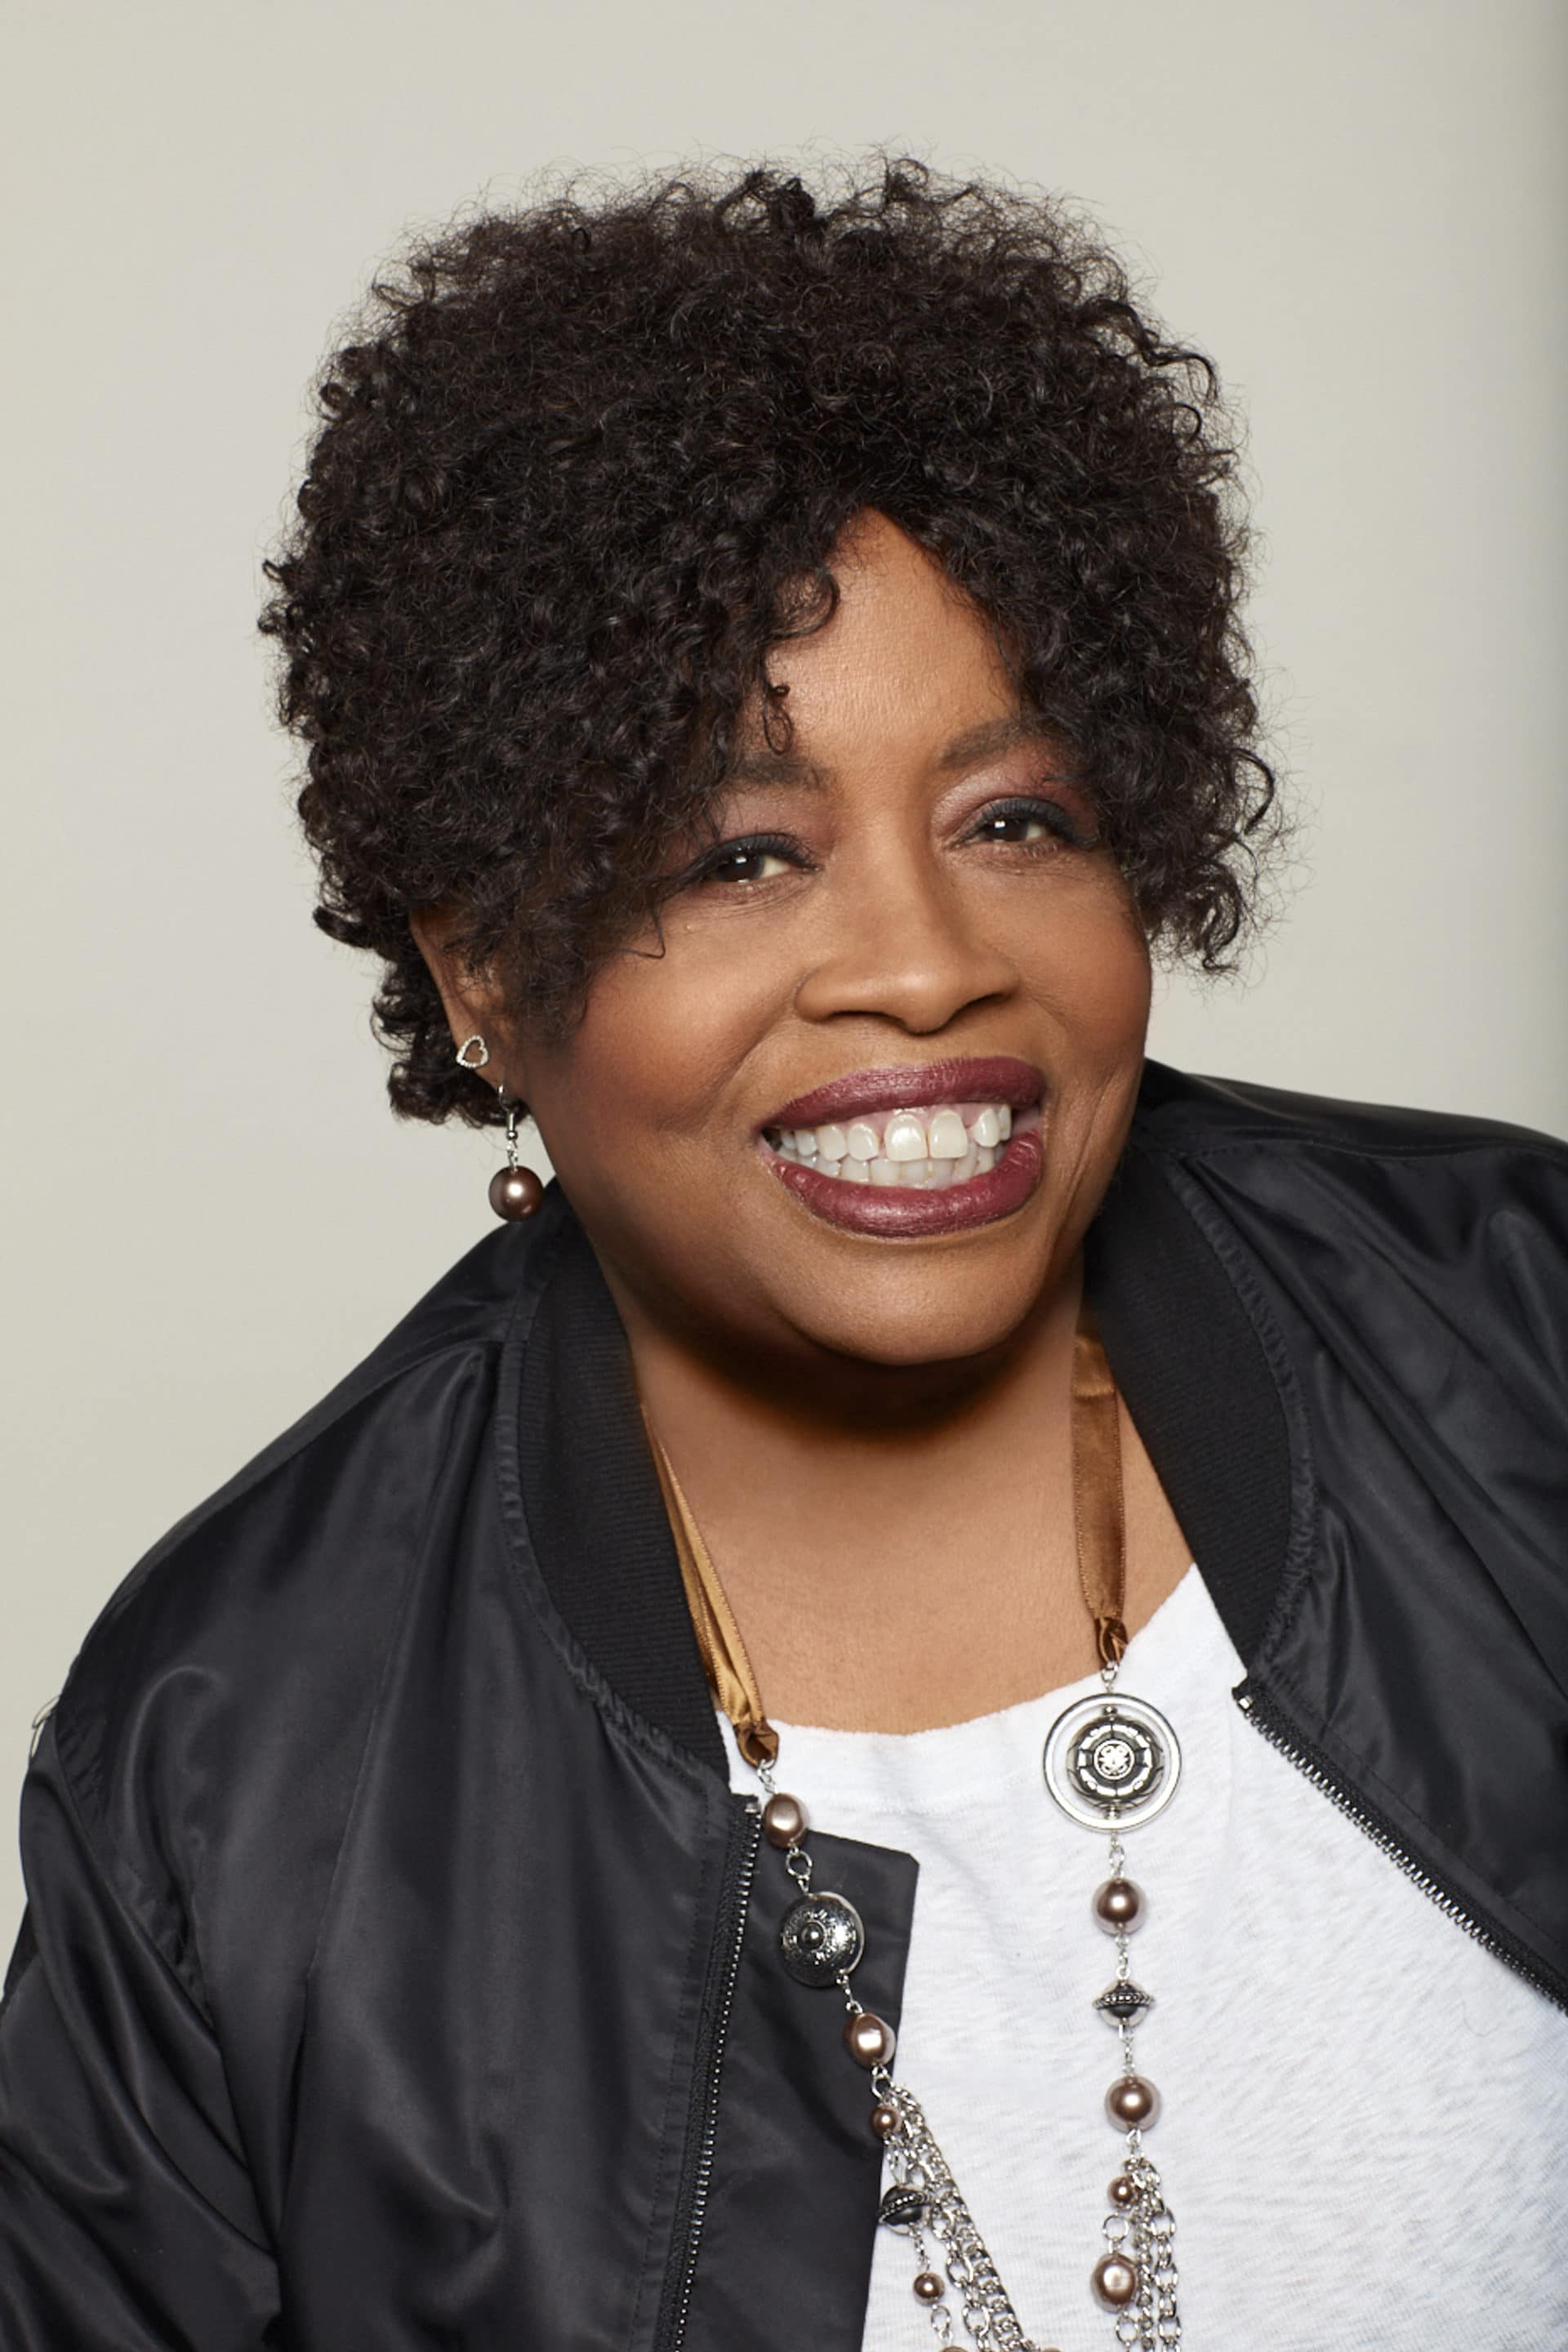 Writer, Producer, And Mentor Eunetta Boone Passes Away At 63